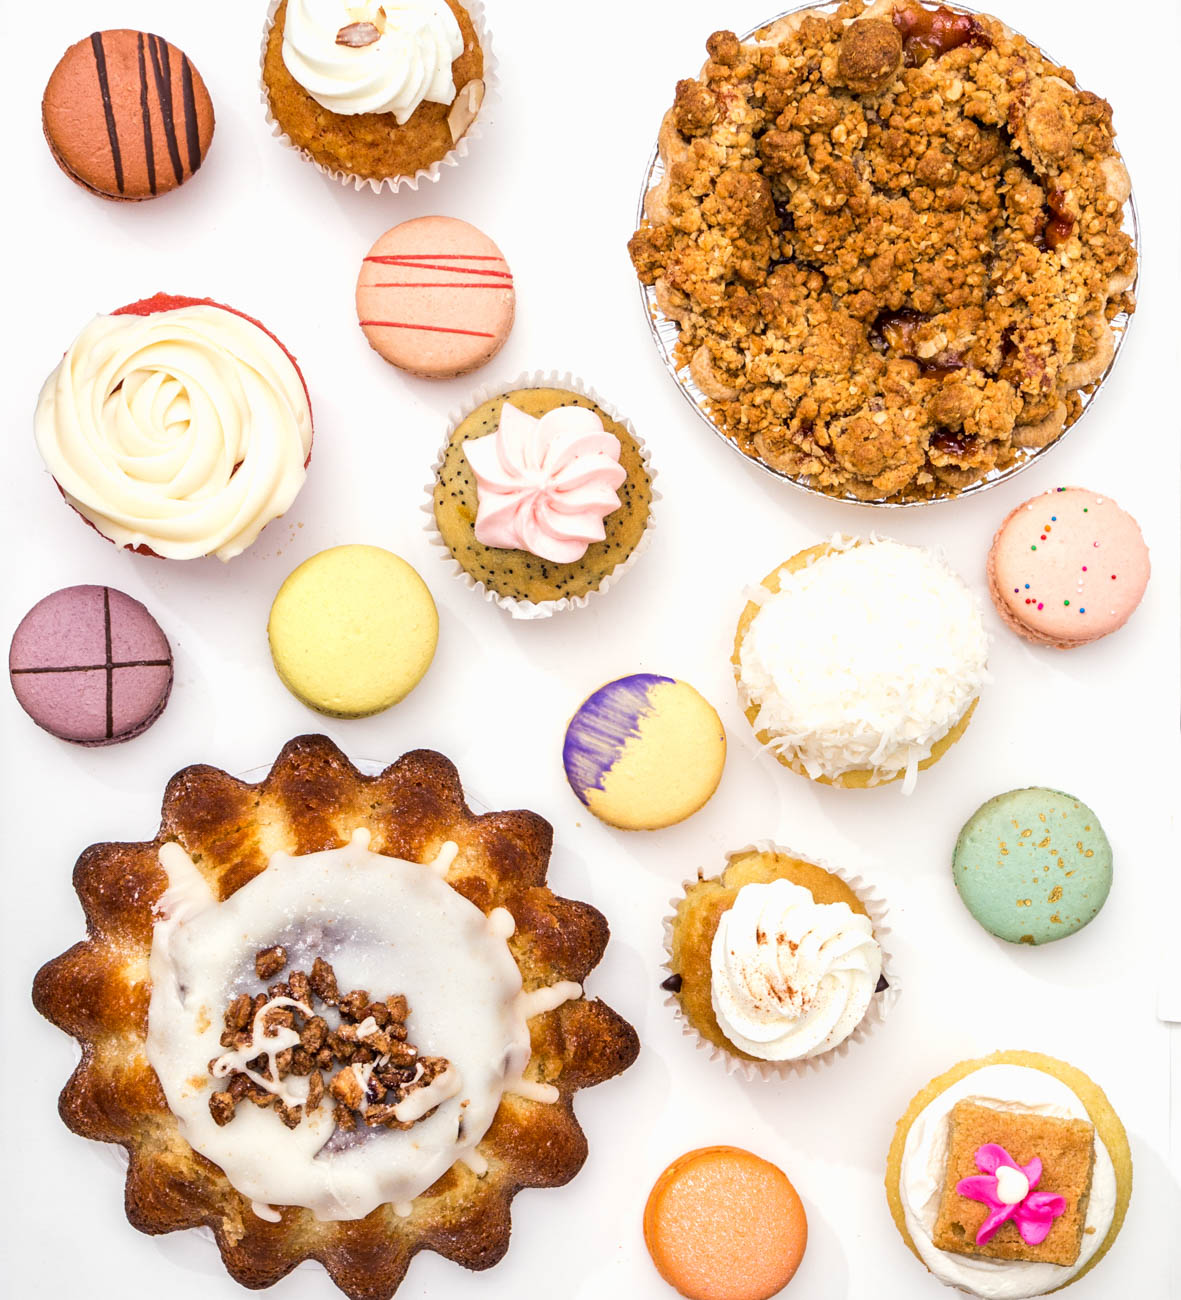 From cakes to macarons and every baked good in between, the eight bakeries in this roundup have all honed their delicious crafts and know the way into our hearts (and bellies). / Image: Catherine Viox // Published: 1.4.20